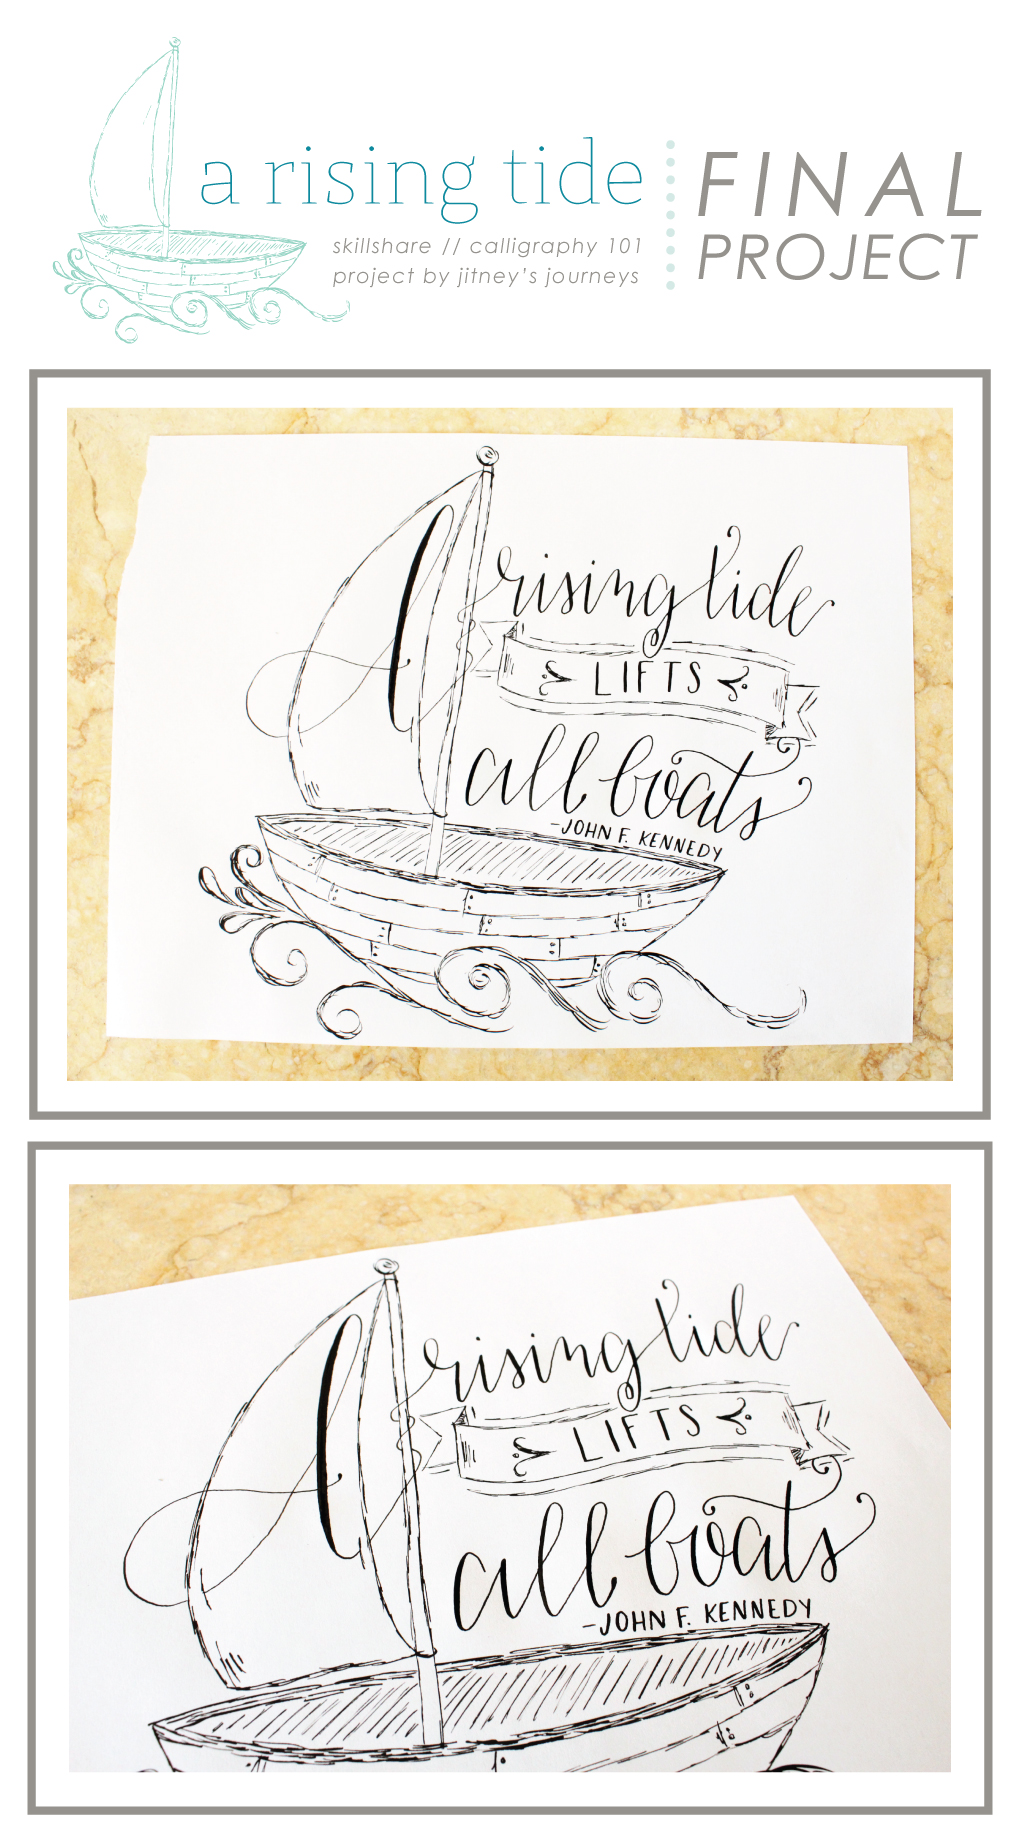 Calligraphy 101 Skillshare Project by Whitney Todd @ Jitney's Journeys